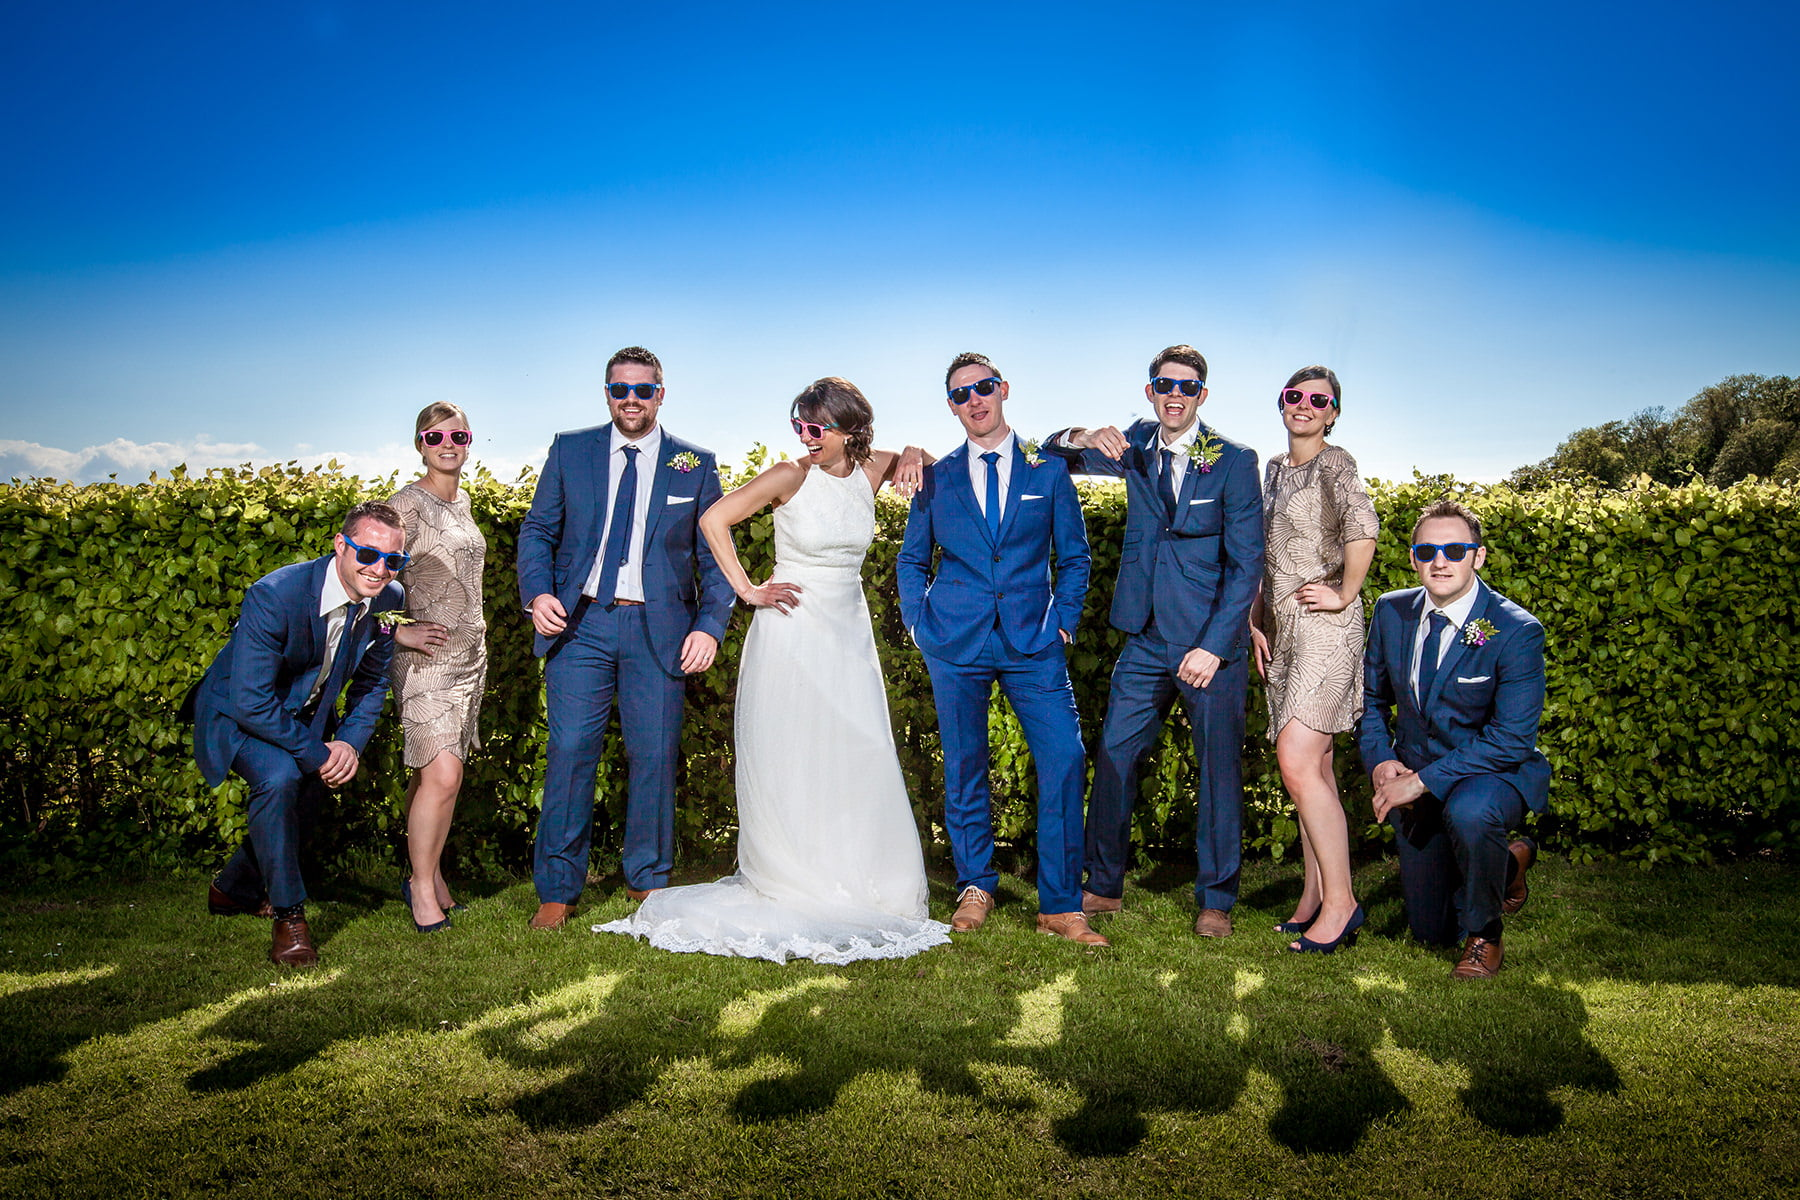 wedding photographer north wales, cheshire and chester